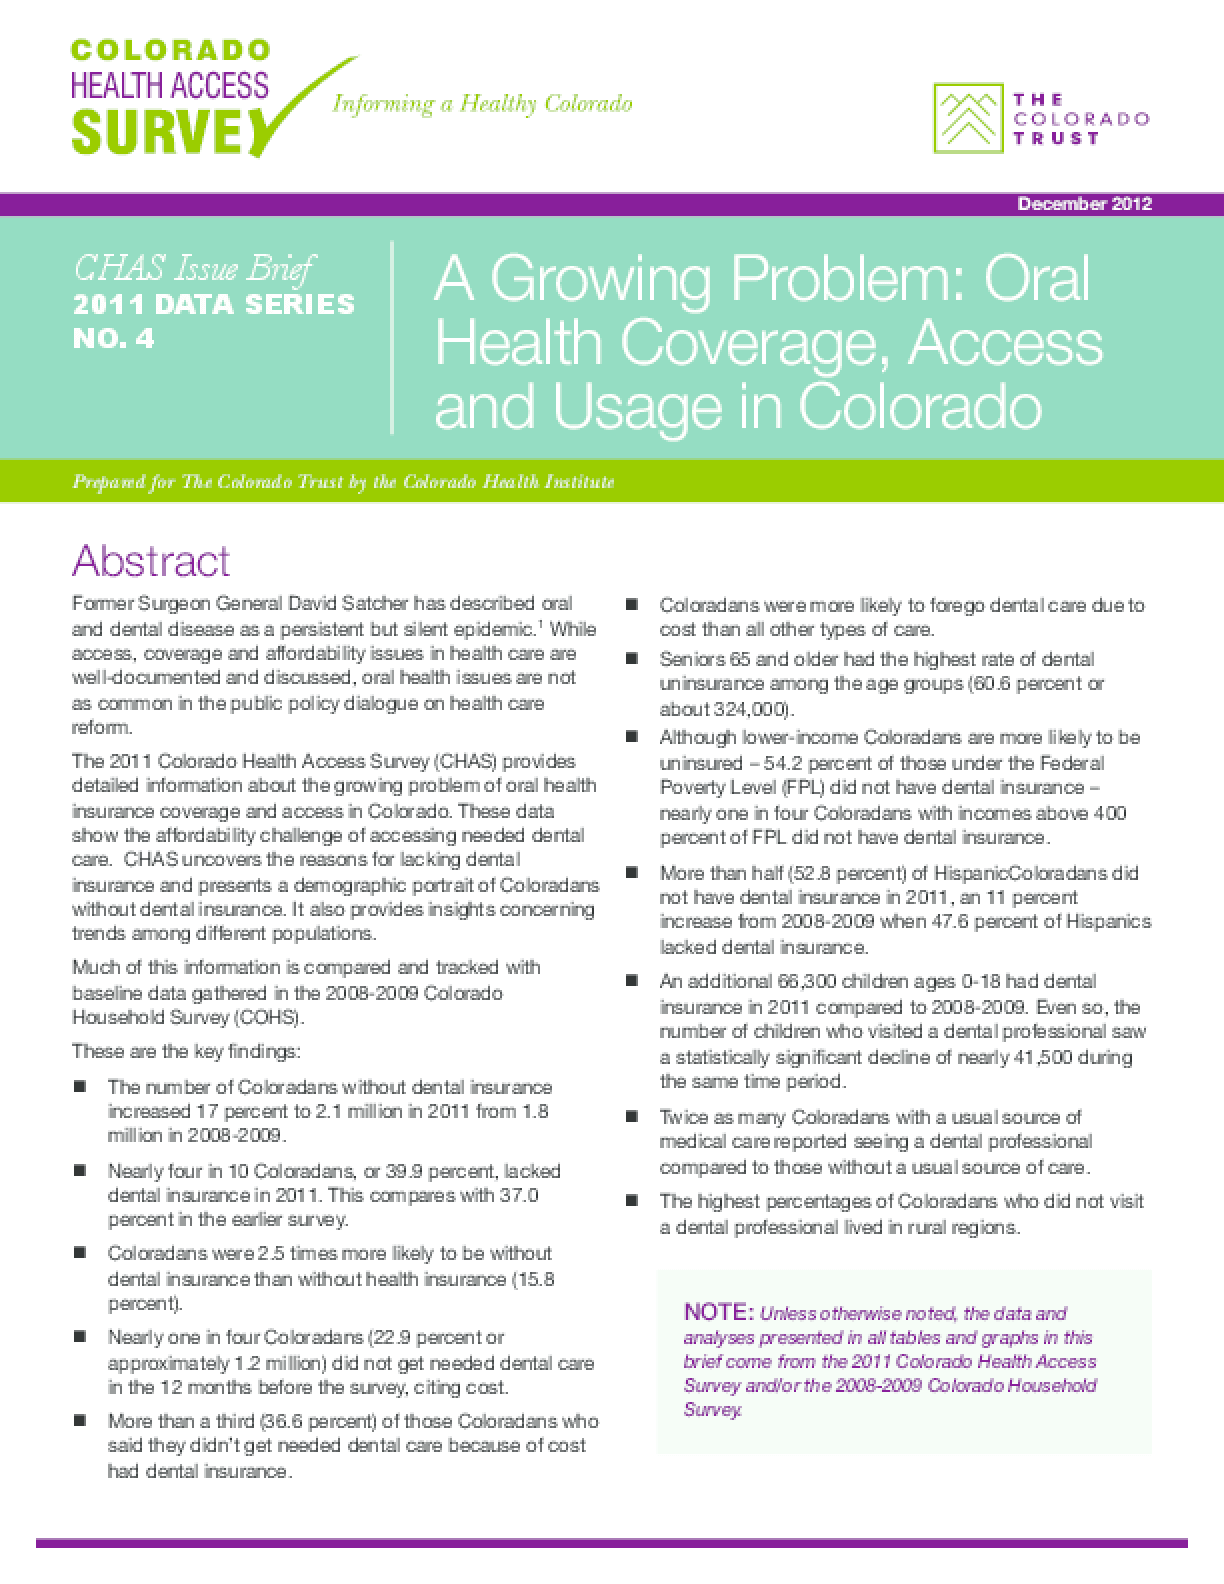 Issue Brief: A Growing Problem: Oral Health Coverage, Access and Usage in Colorado